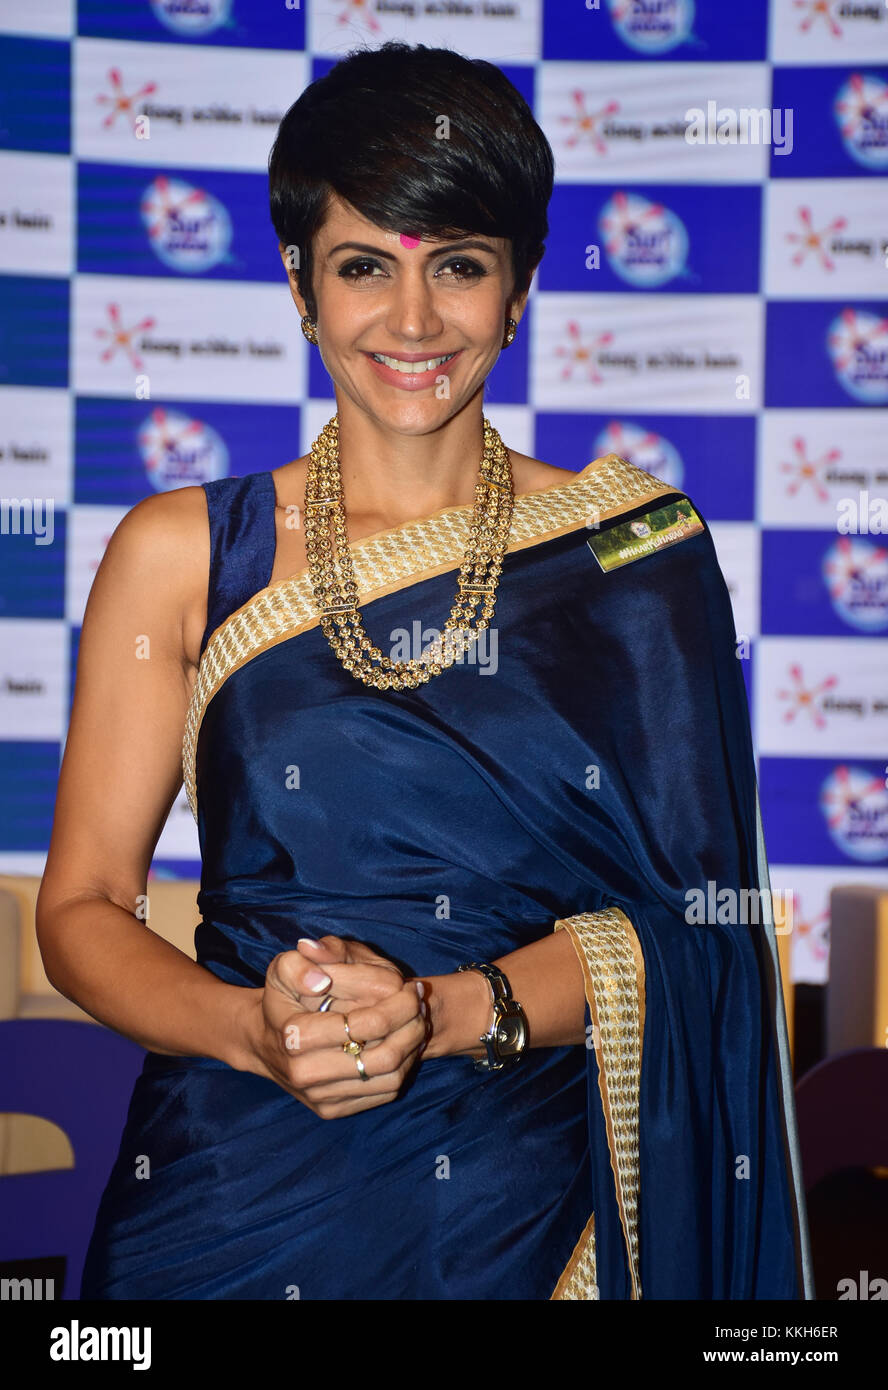 Discussion on this topic: Sonia Manzano, mandira-bedi/